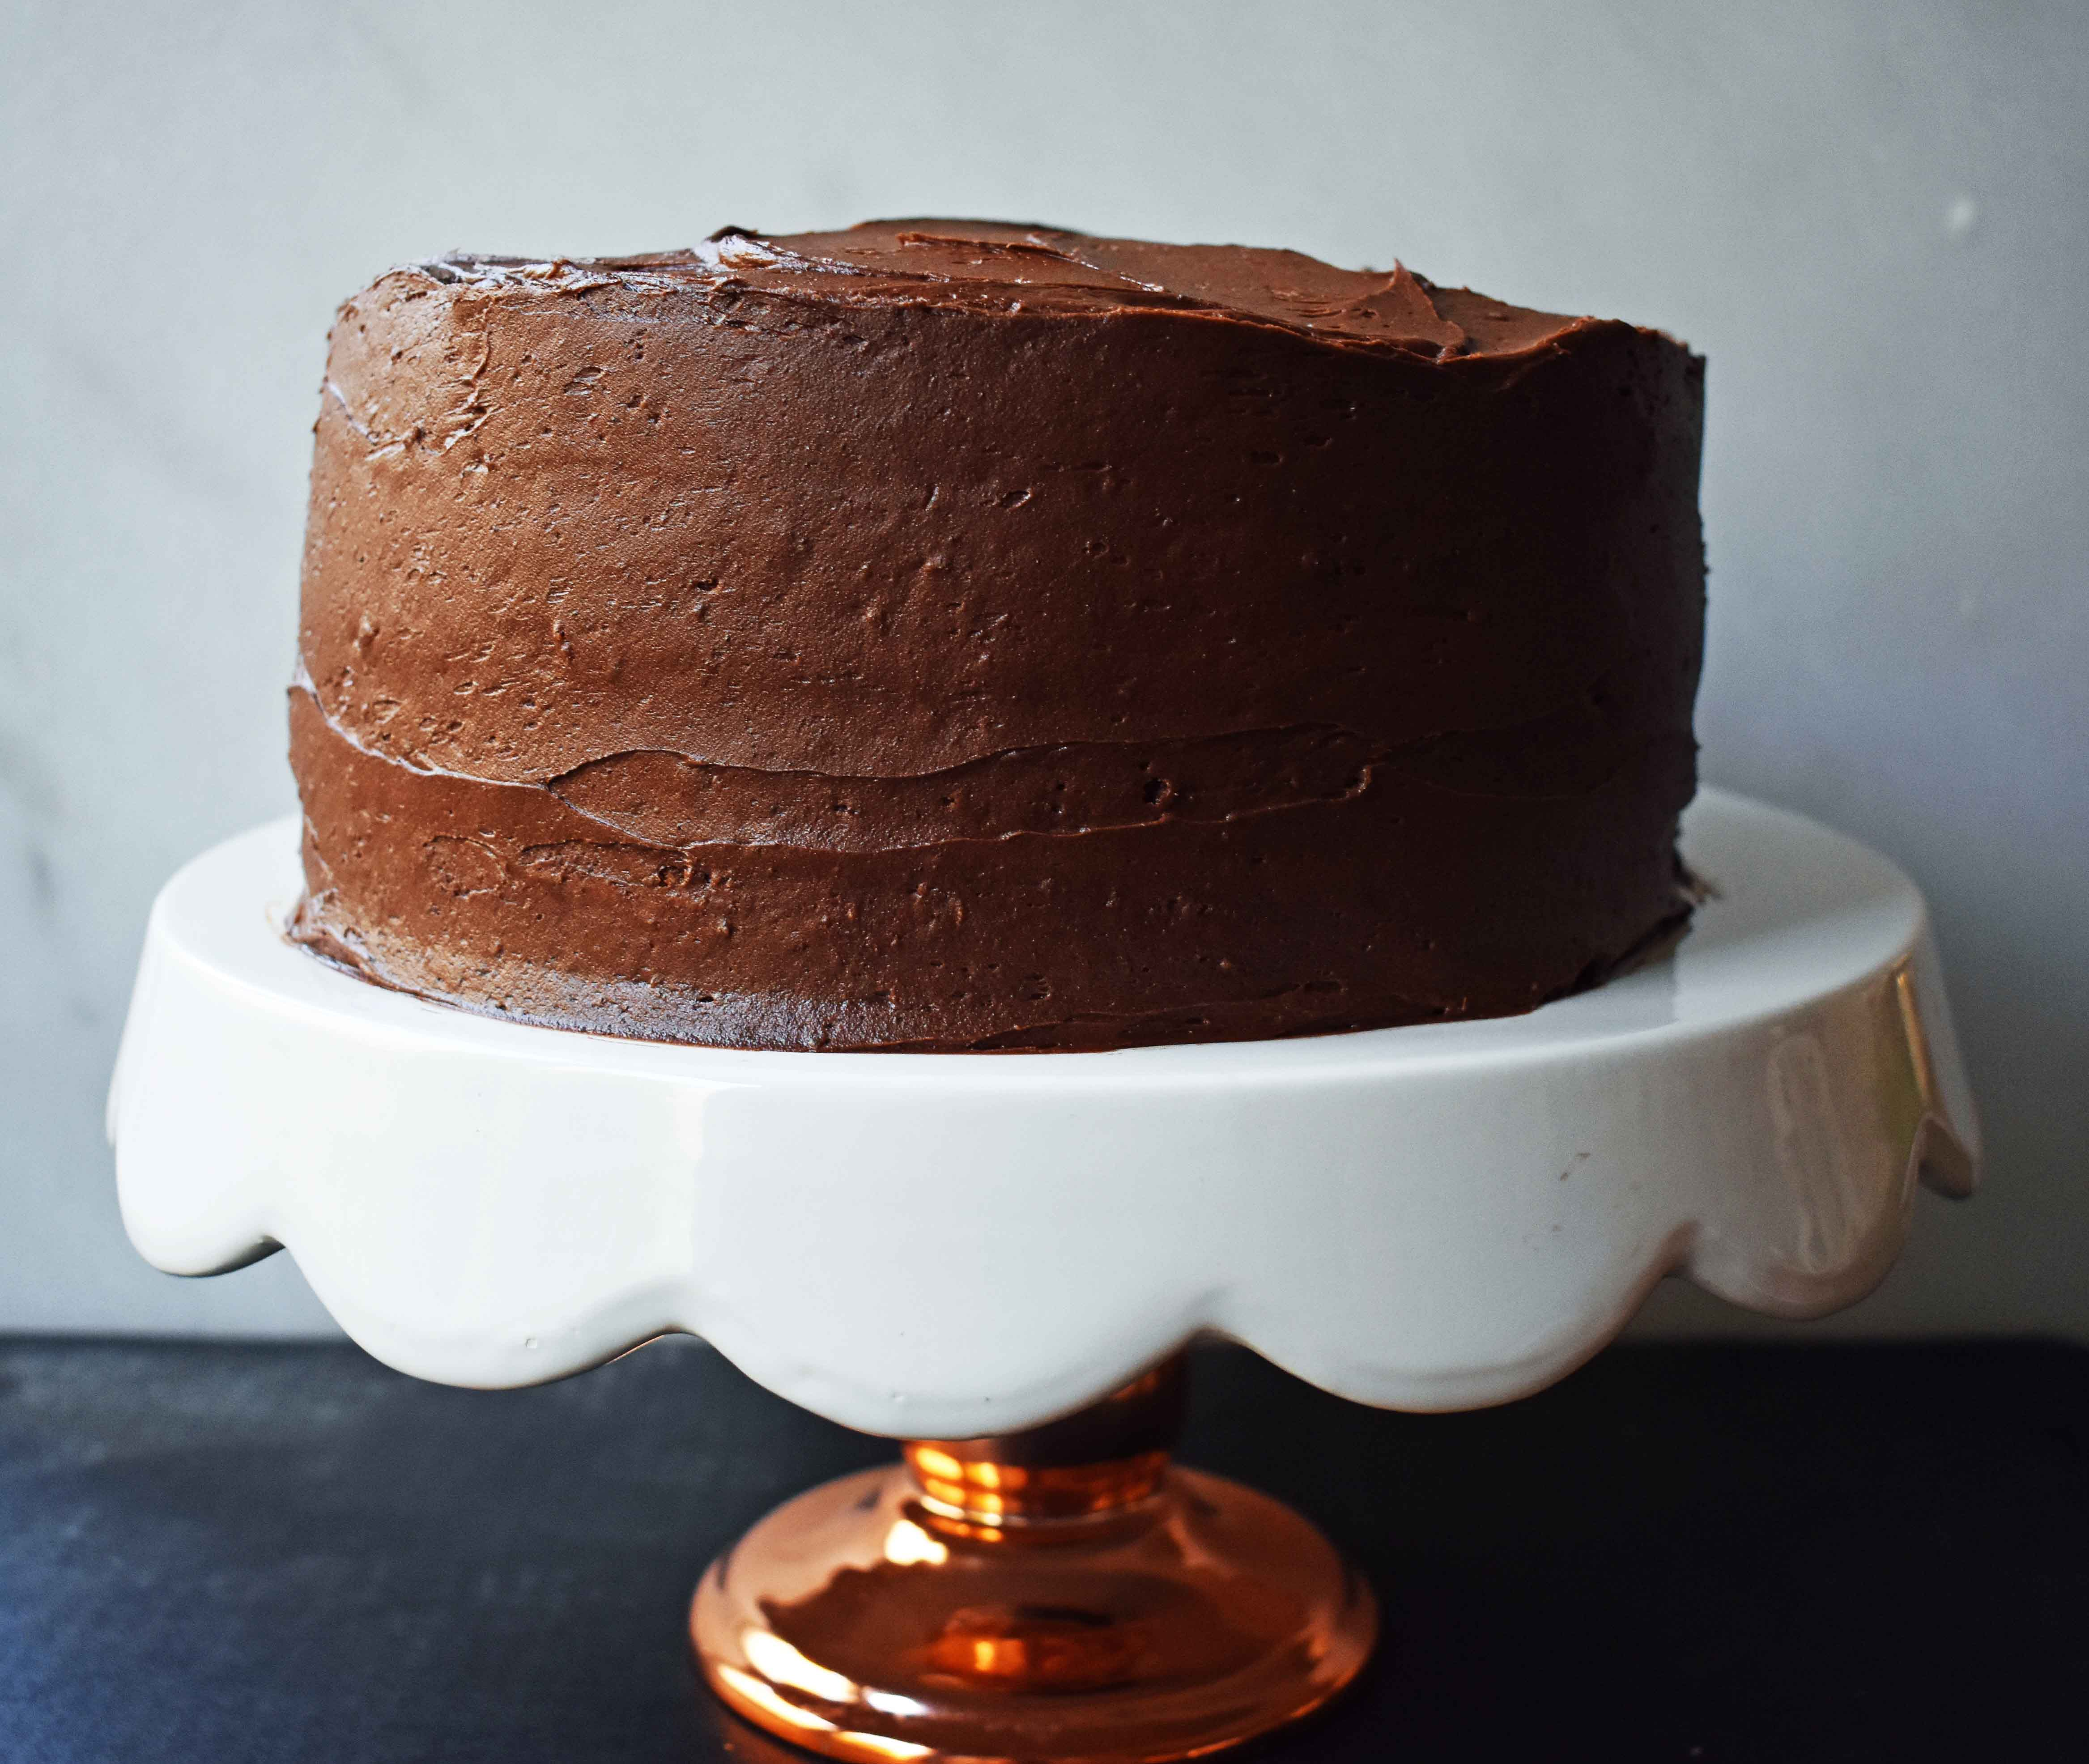 Yellow Birthday Cake with Milk Chocolate Frosting by Modern Honey. Homemade Yellow Cake with Vanilla Pudding Mix to make it extra moist and flavorful. Rich chocolate buttercream is the perfect addition to this birthday cake.